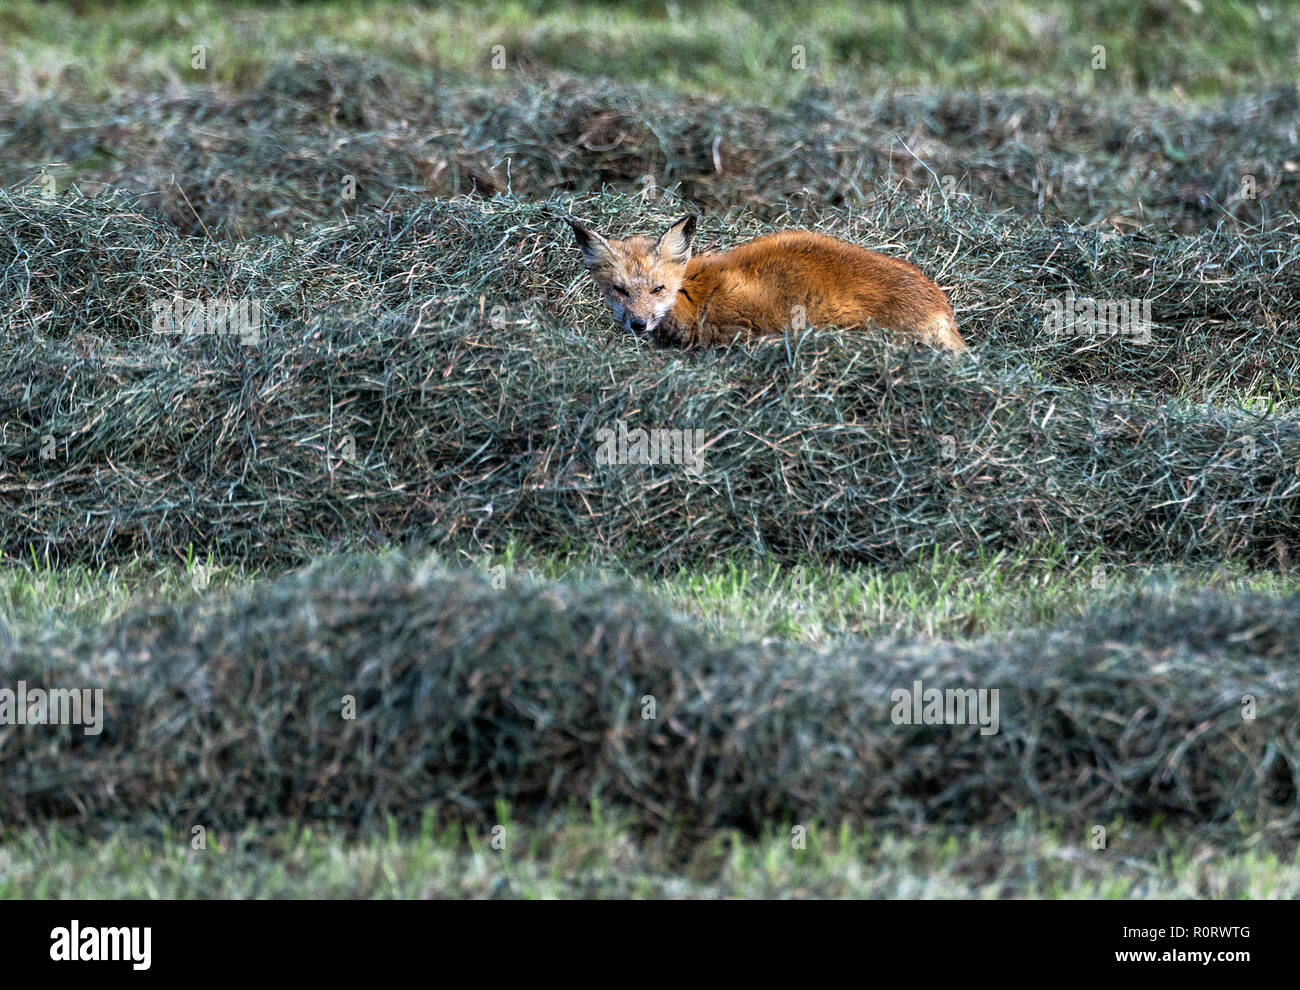 Red fox hunting in a hay field, Tiverton, Rhode Island, USA. - Stock Image